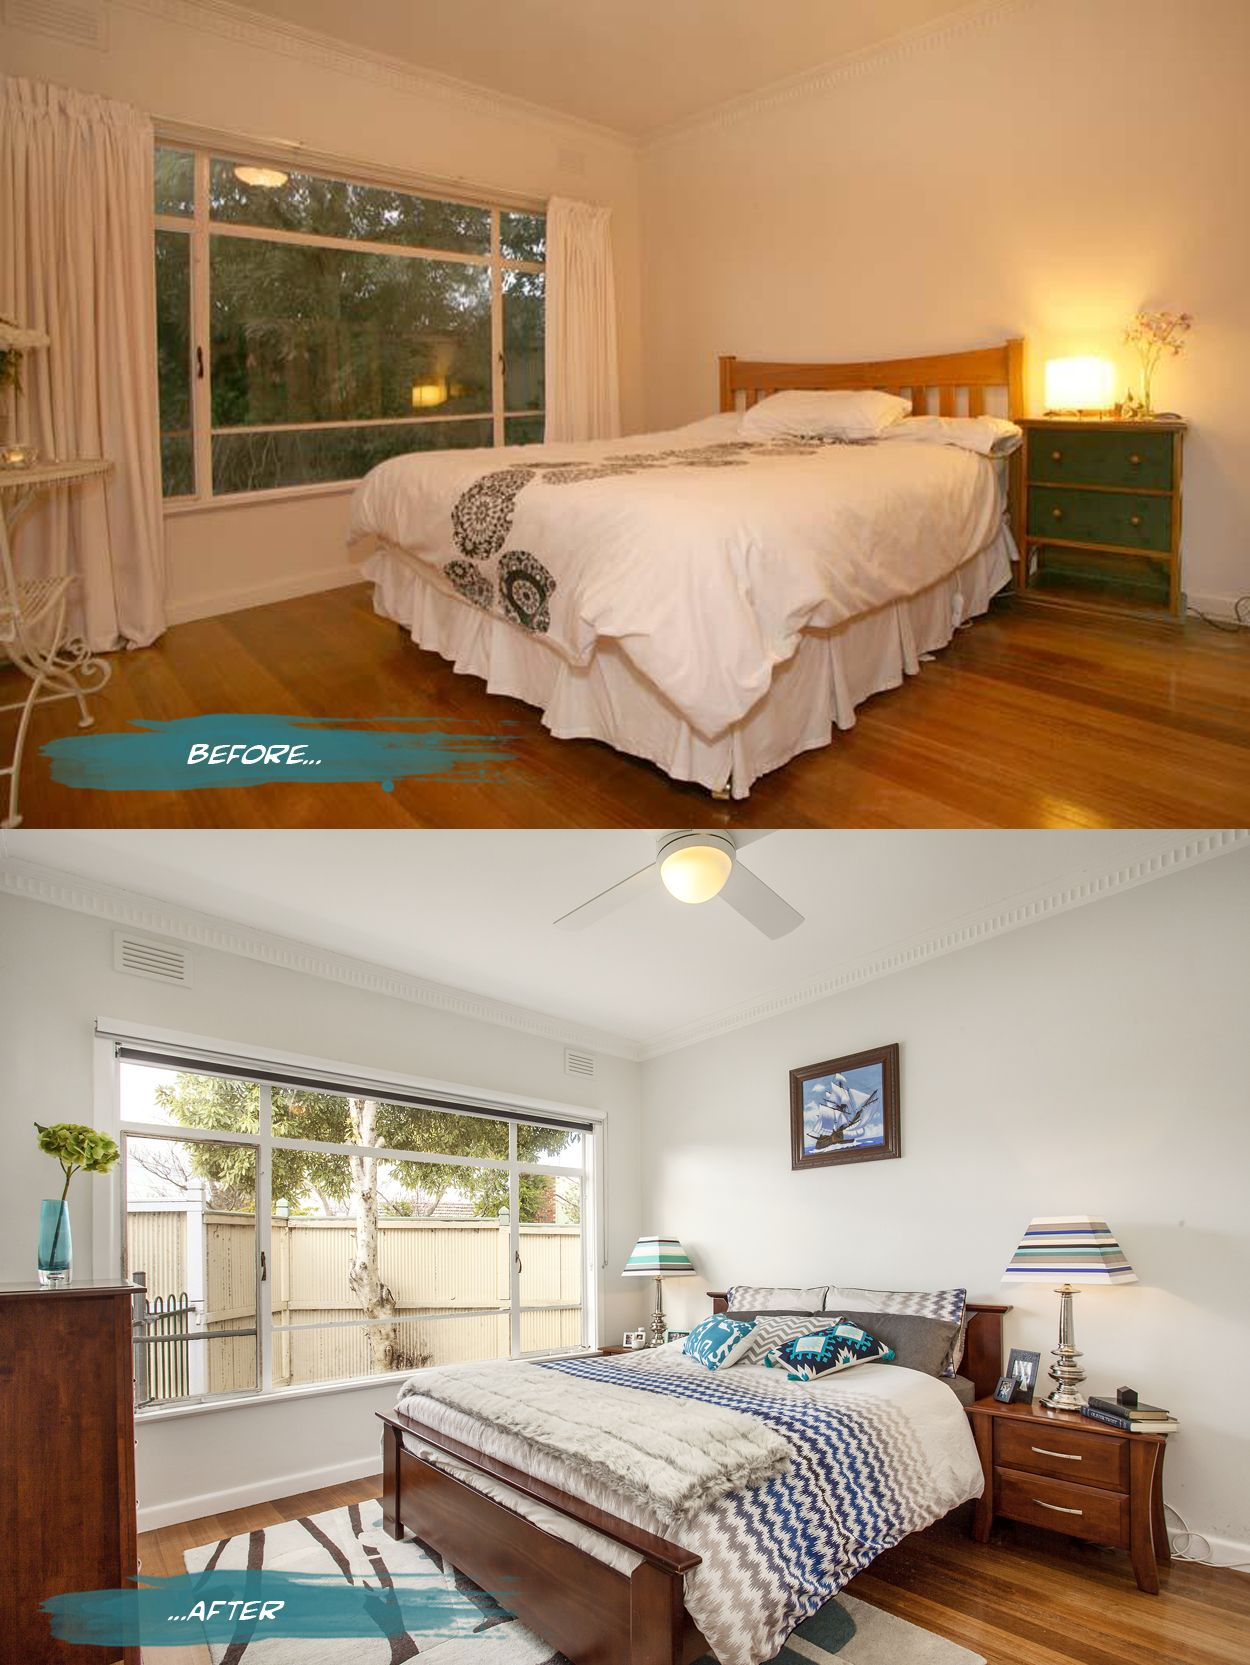 chic room renovation before and after with wooden floor also shades window and lamps table the bedside - Home Styling Blog